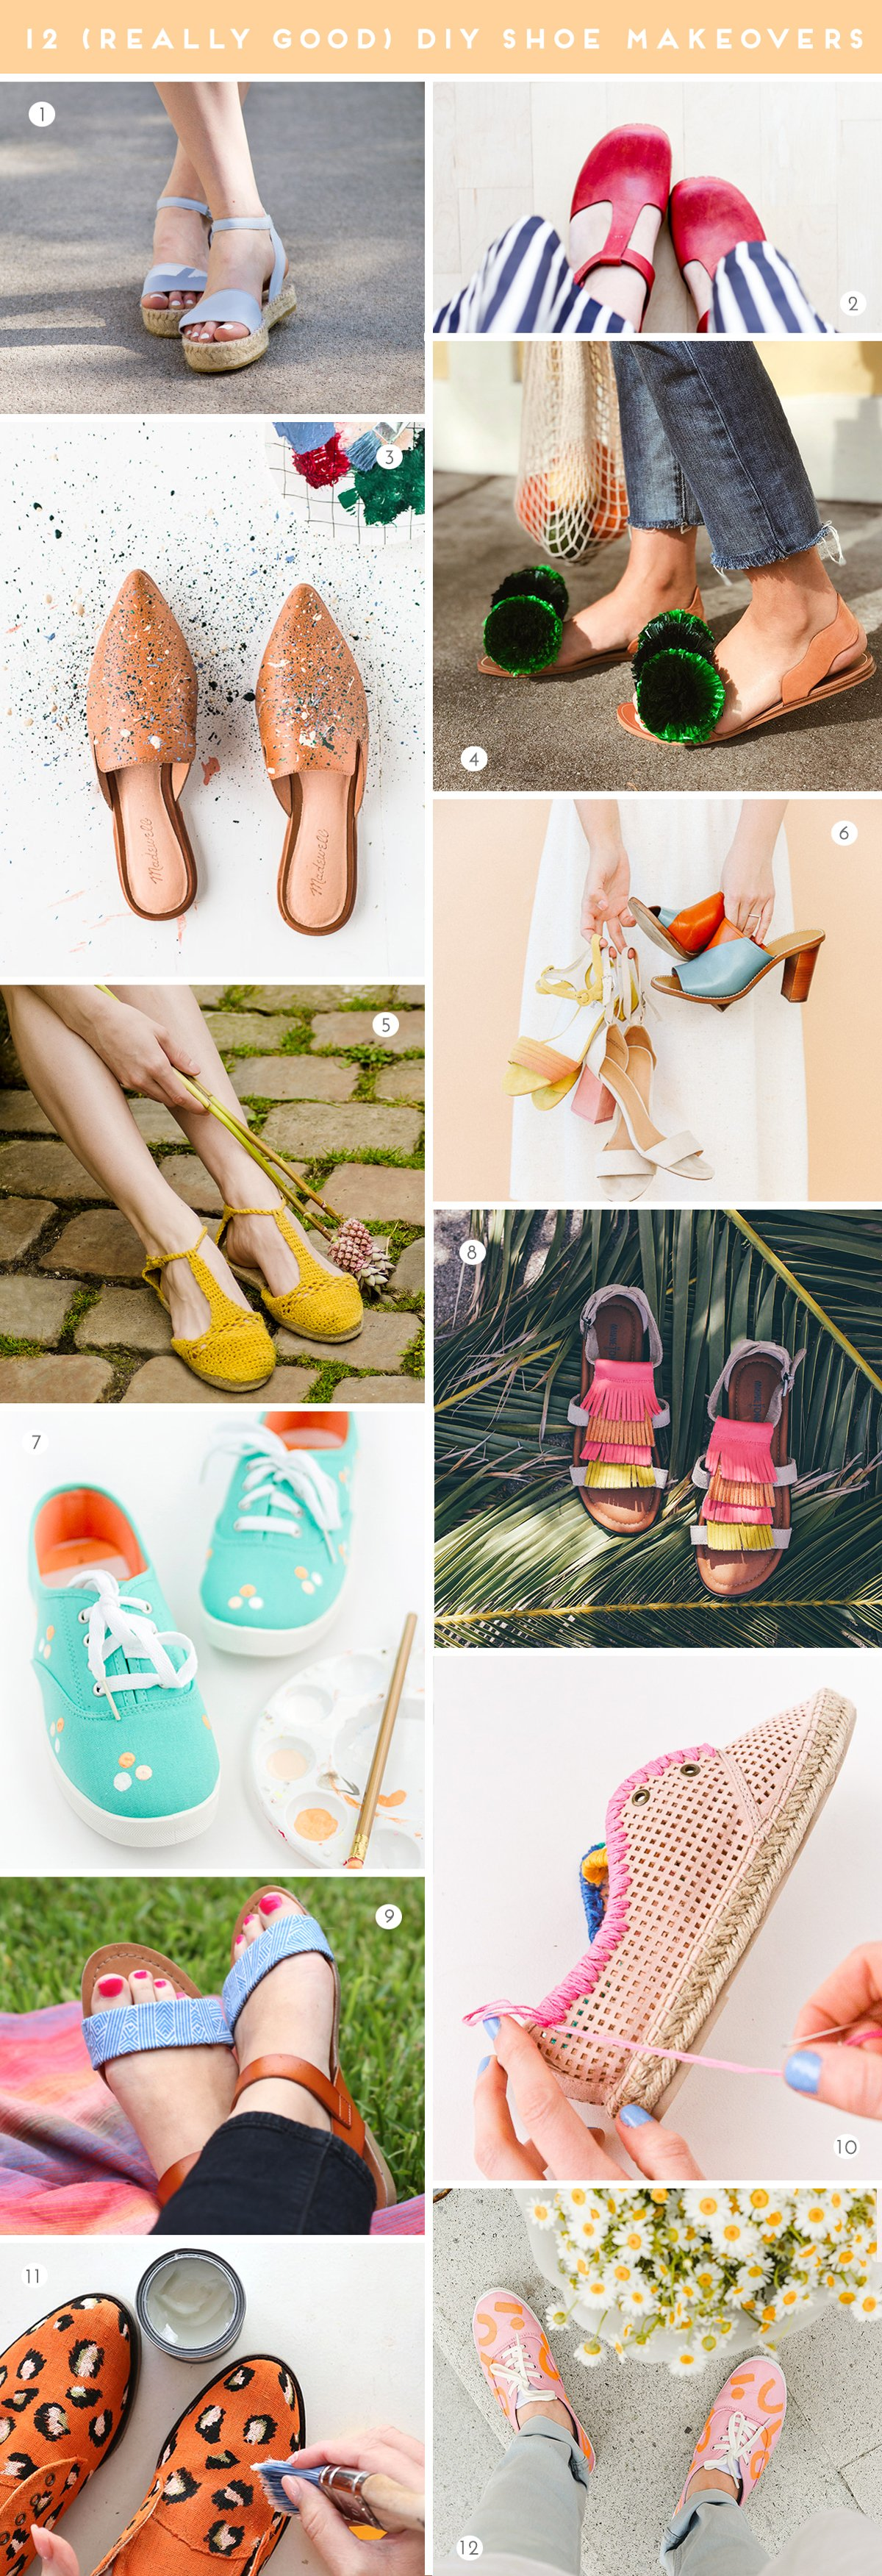 12 (Really Good) DIY Ways to Give Your Old Shoes a Makeover #diyshoes #shoes #diy #diyfashion